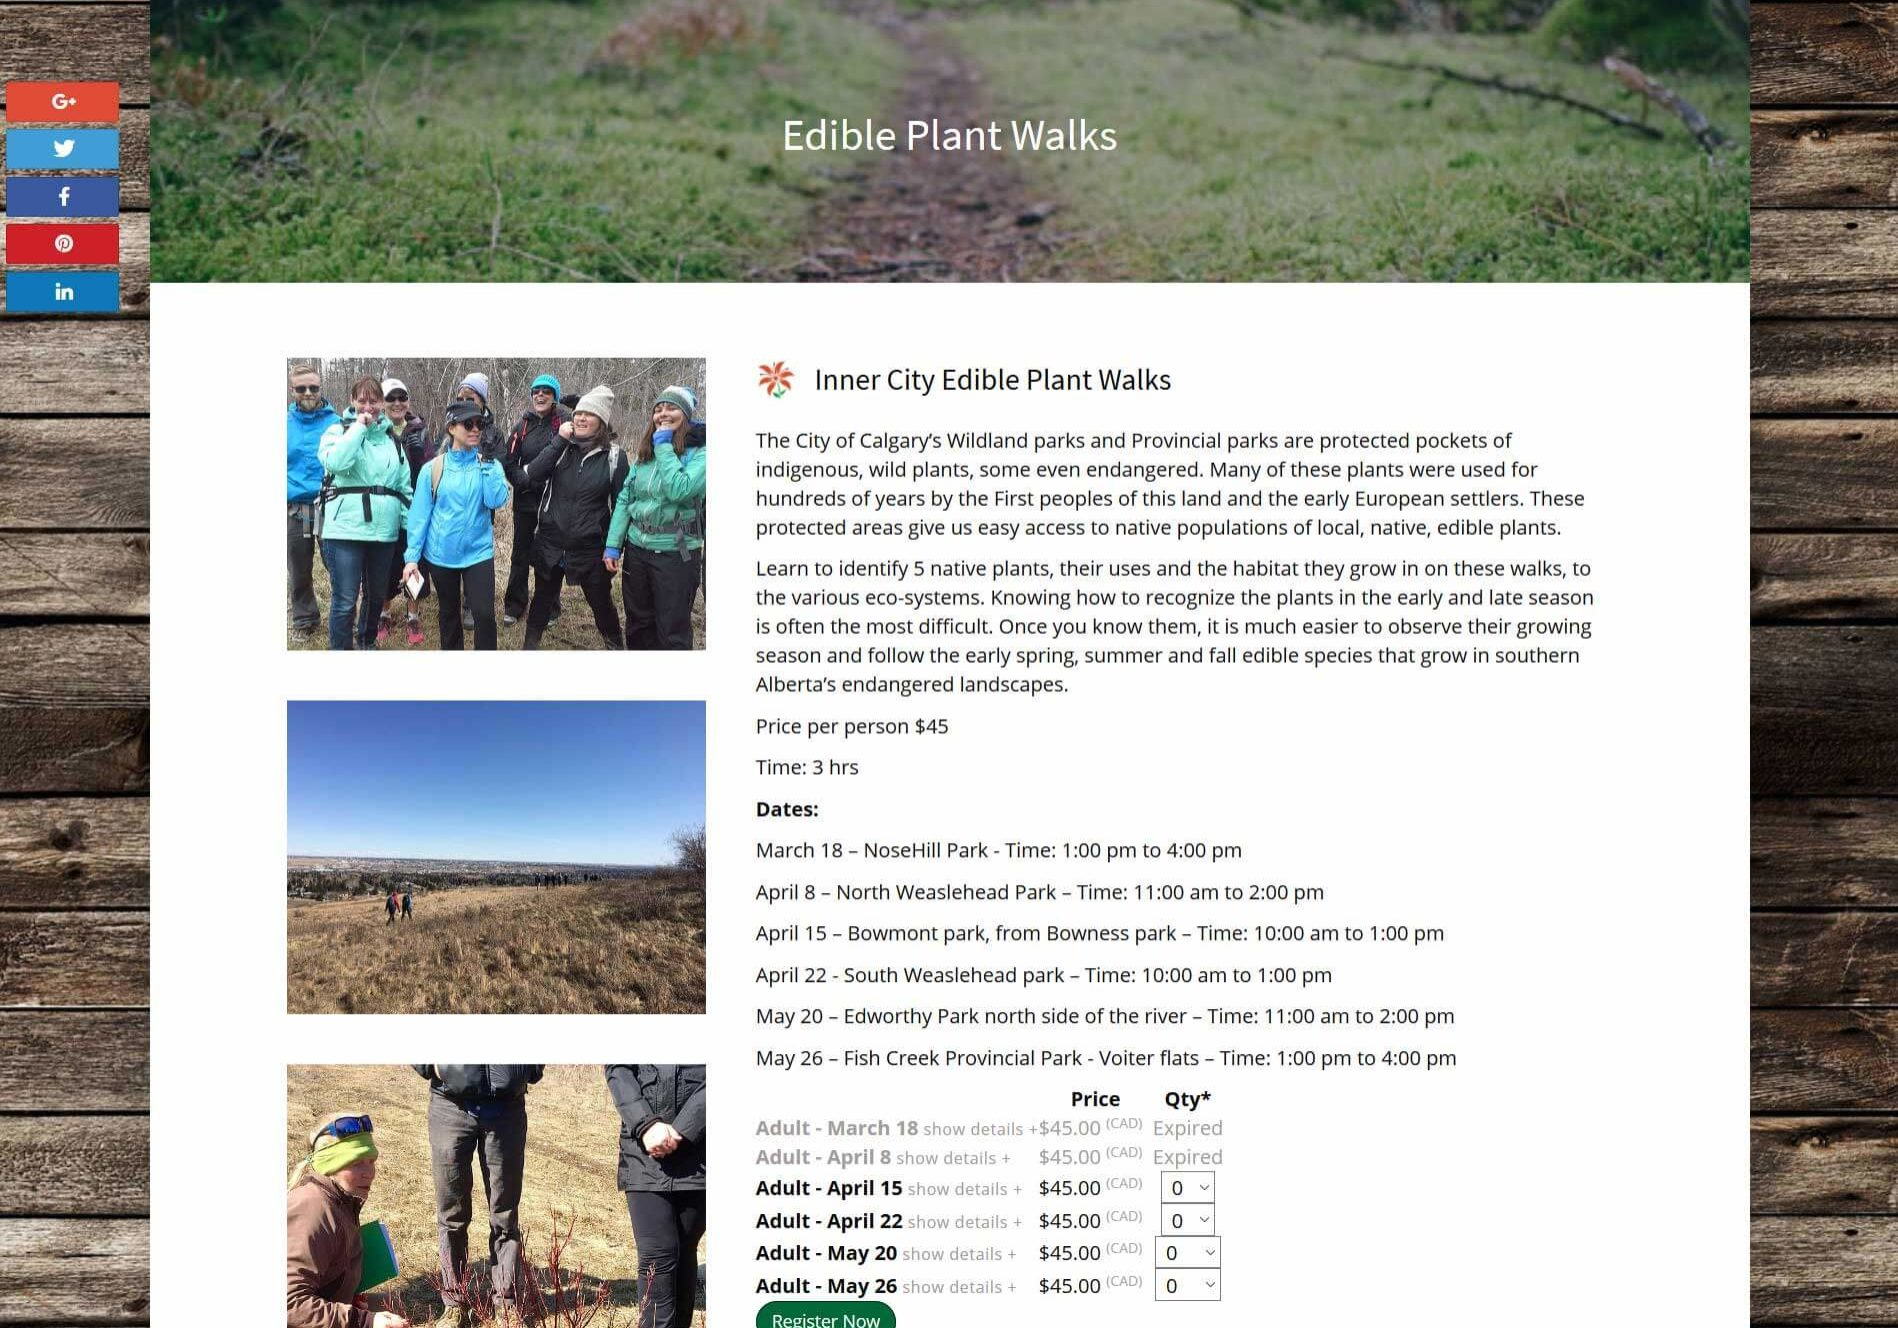 Full Circle Adventures Edible Plant Walks Page Screenshot